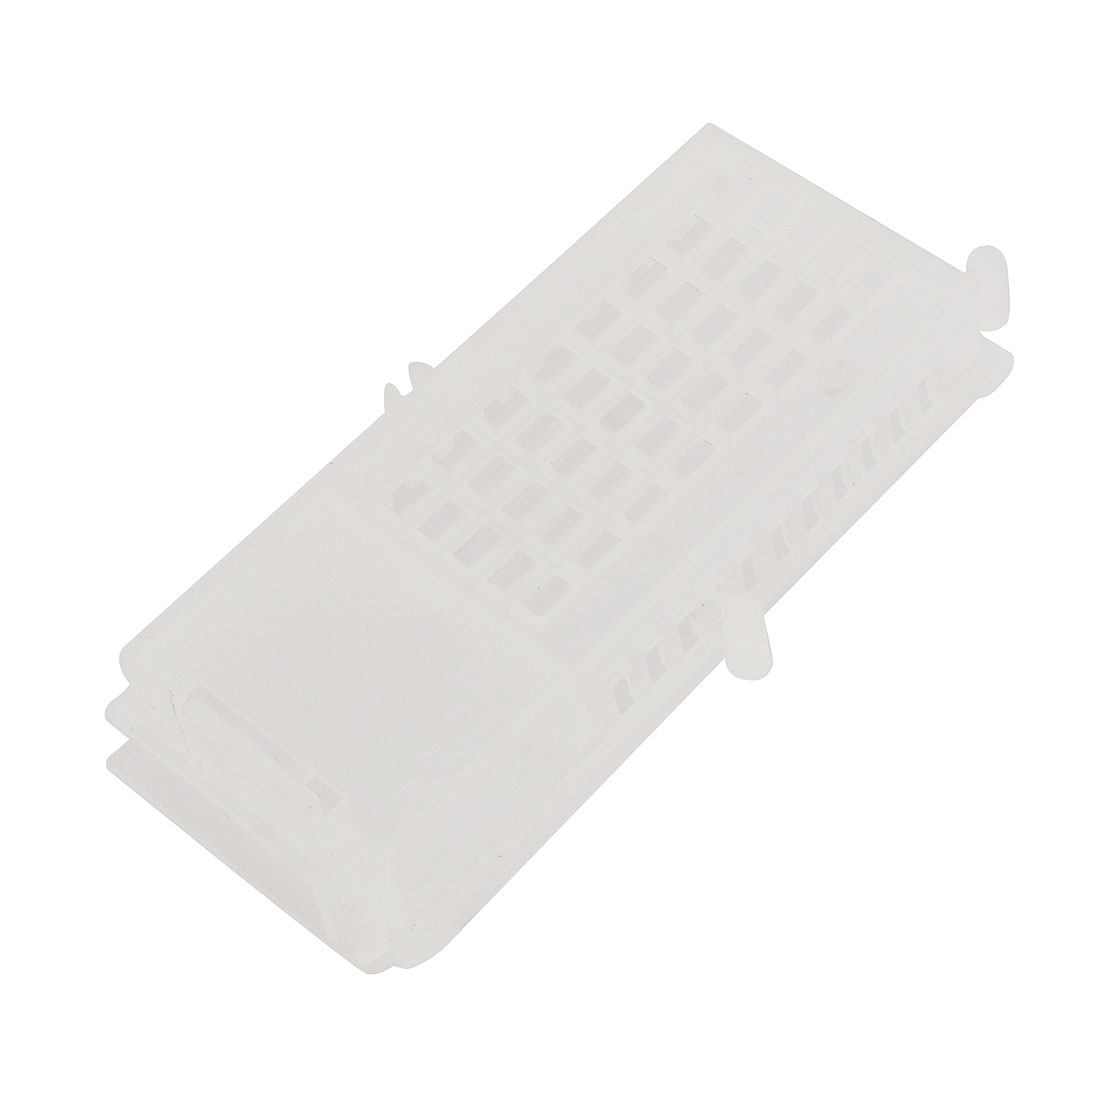 White Plastic Queenbee Isolation Case Transport Bee Cage Beekeeping Tool